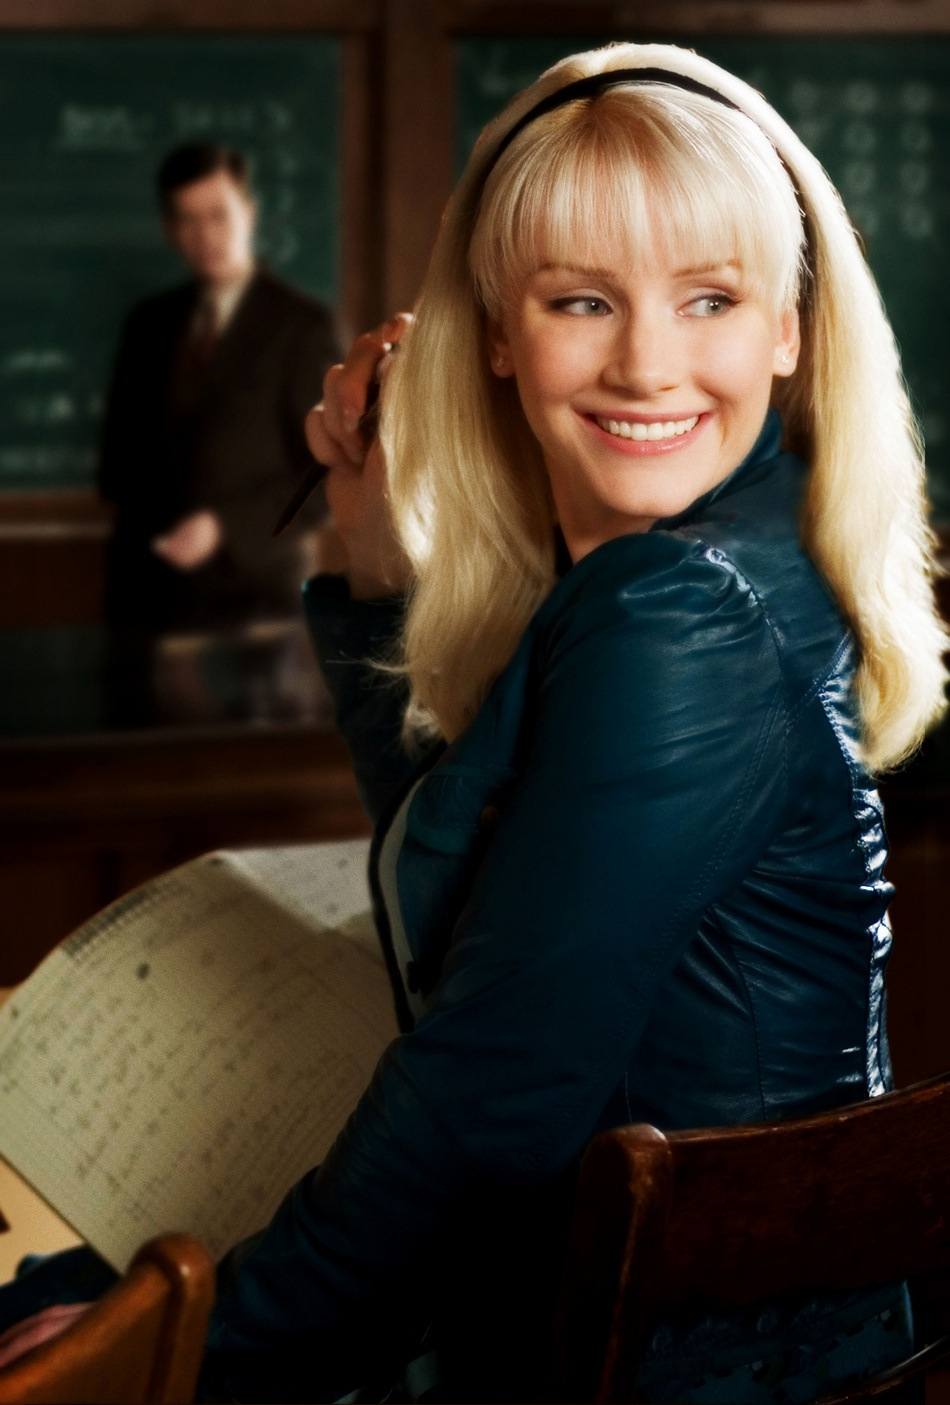 Gwen Stacy (Bryce Dallas Howard) | Spider-Man Films Wiki ... Tobey Maguire Movies